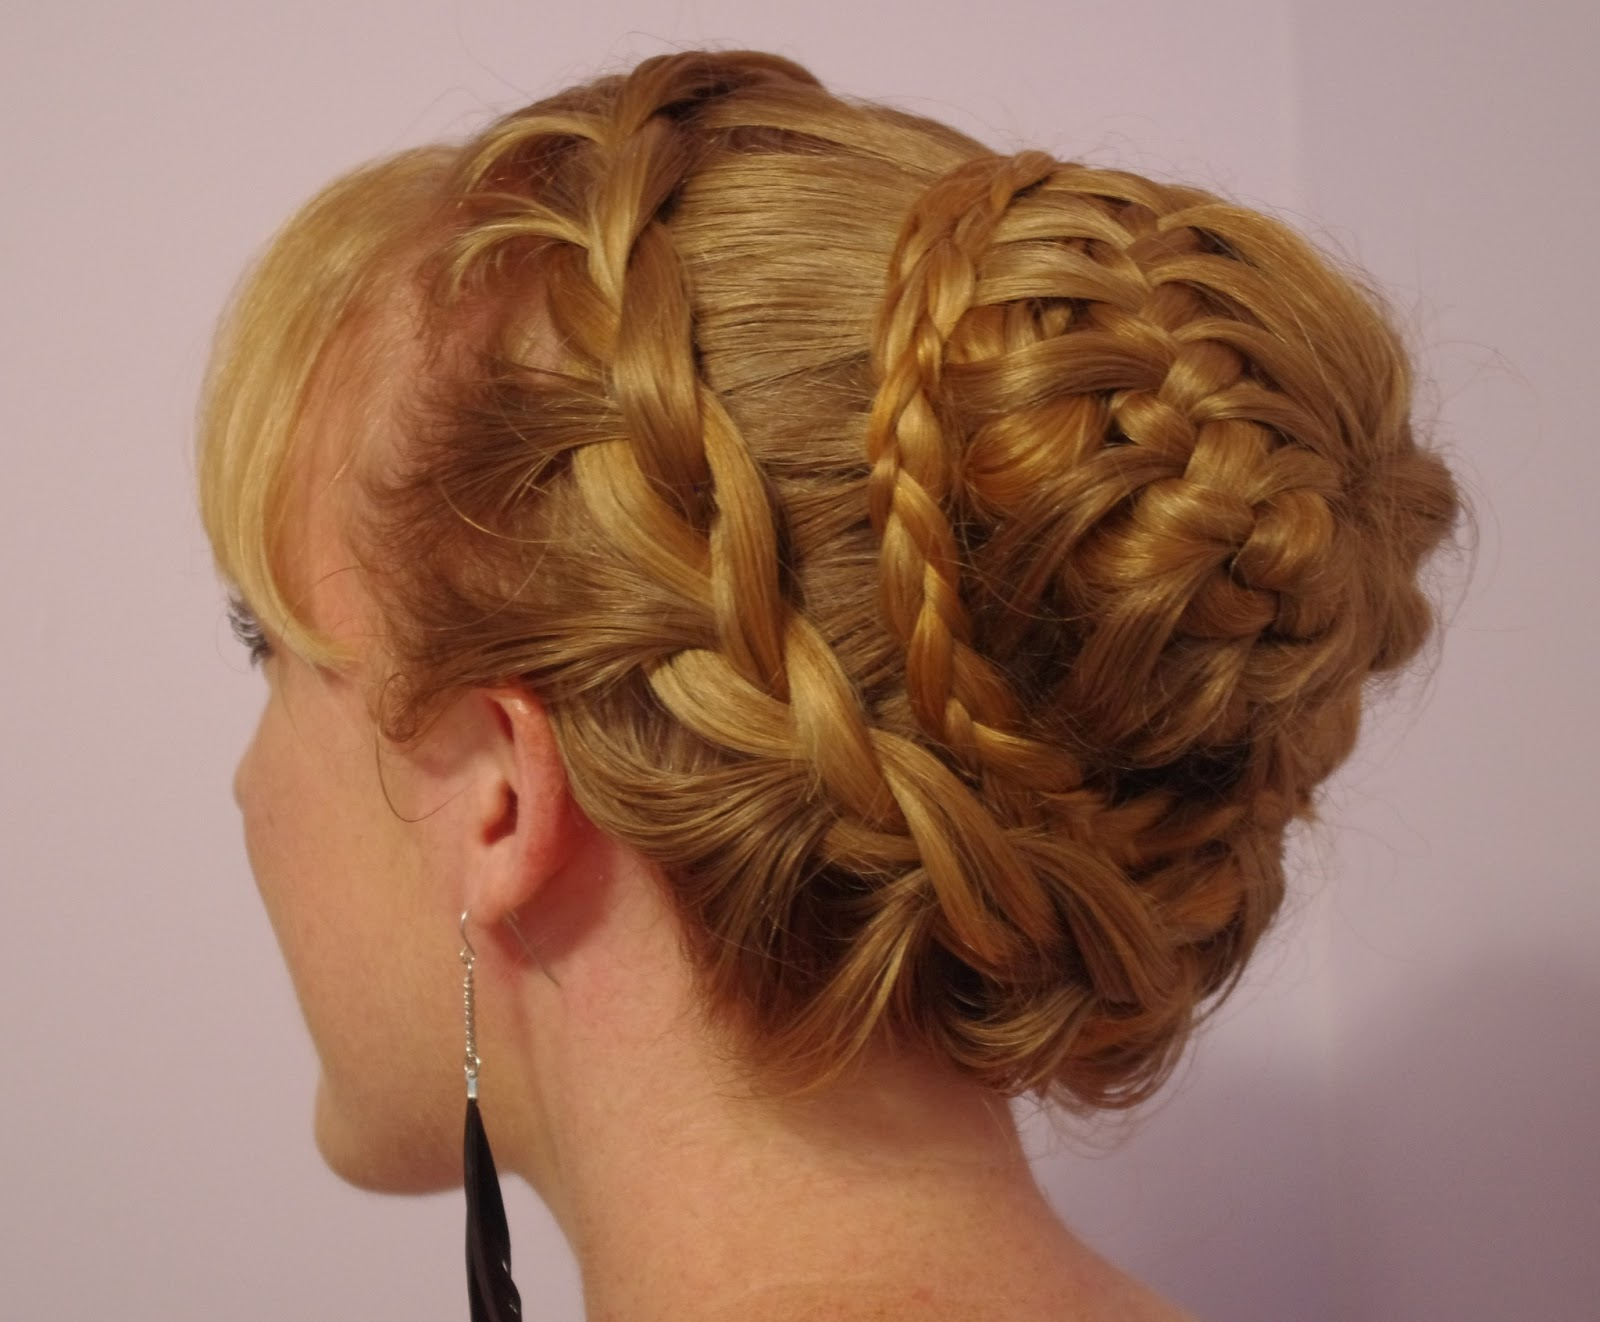 Braided Bun Hairstyles For Long Hair | notonlybeauty